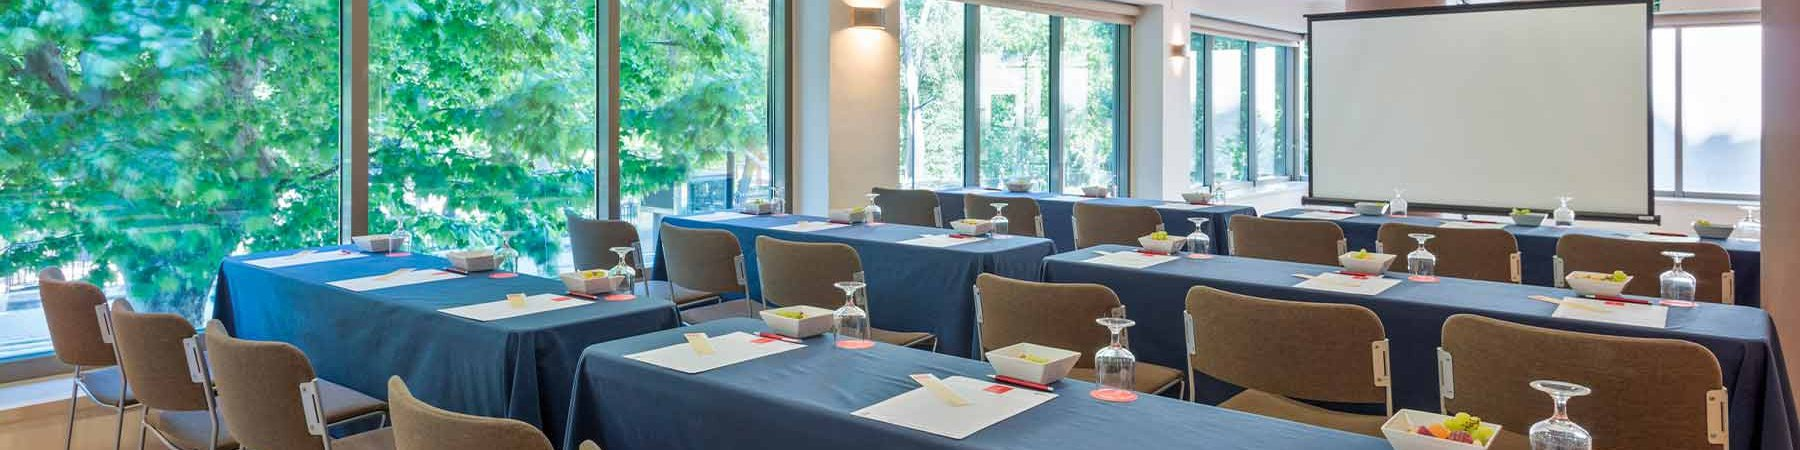 Meeting Rooms - Sercotel Hotel Los Llanos